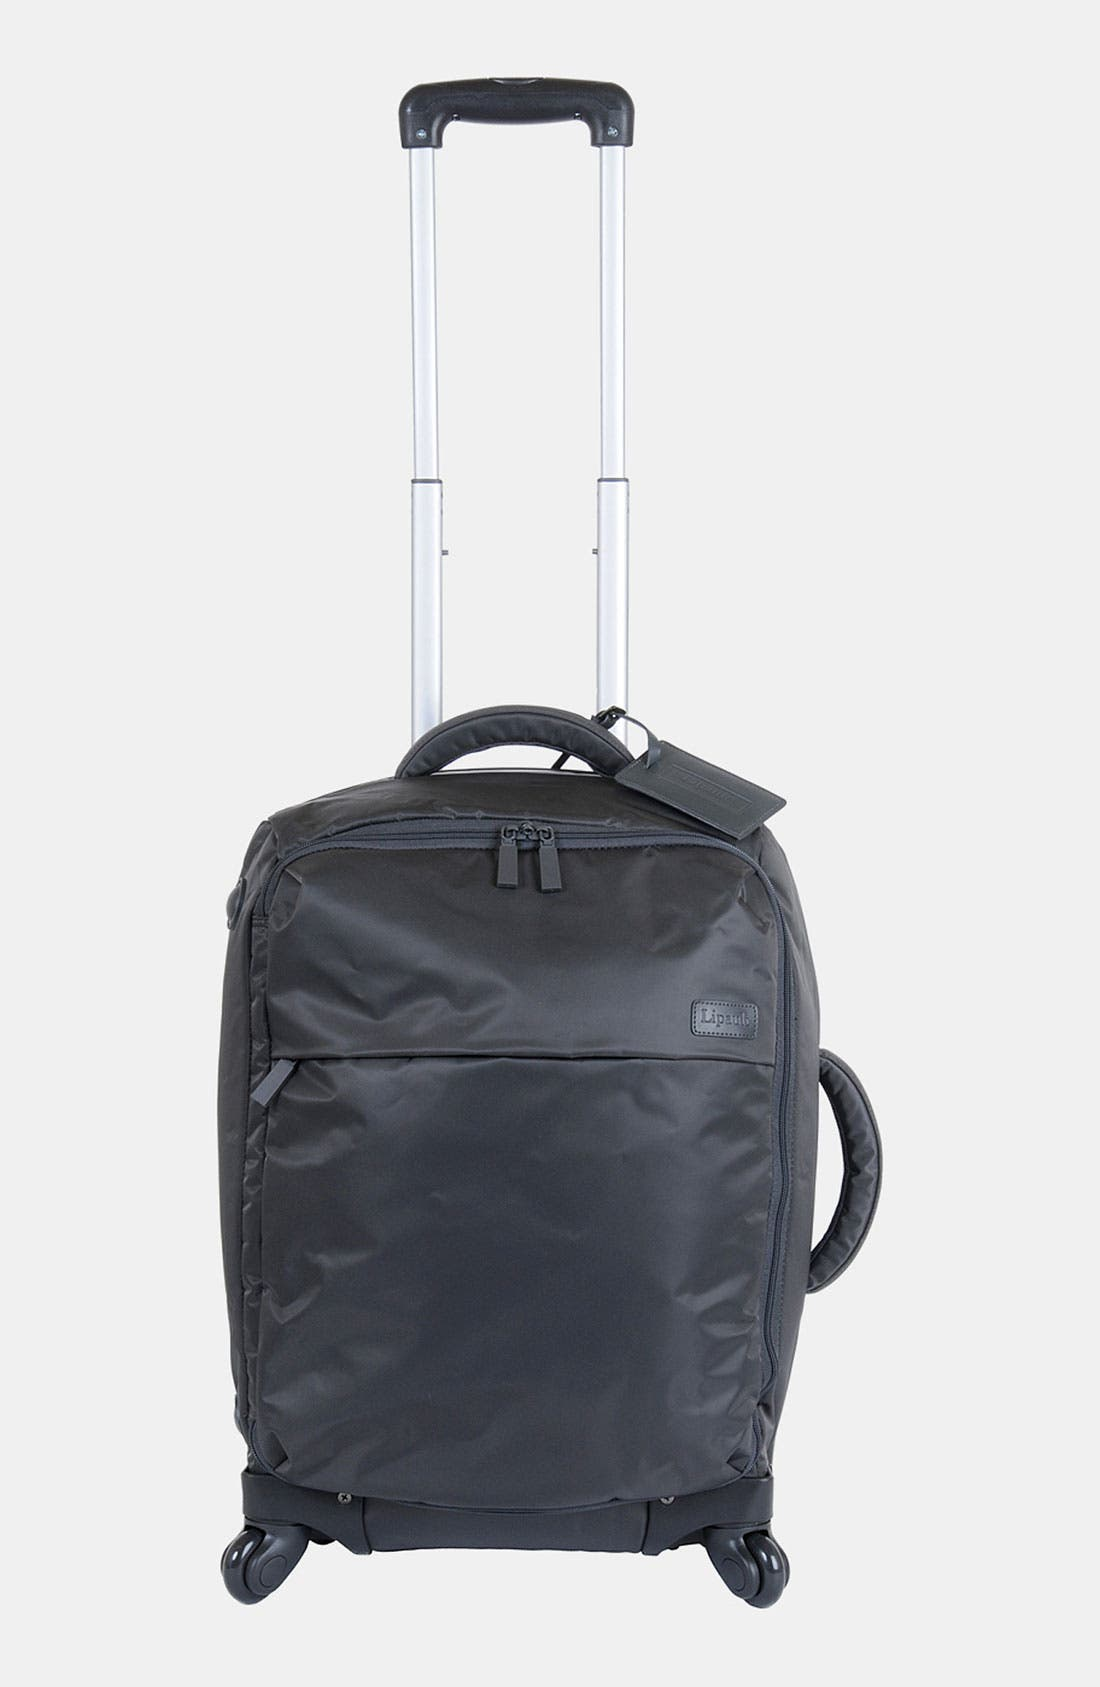 Main Image - LIPAULT Paris 4-Wheel Carry-On (22 Inch)